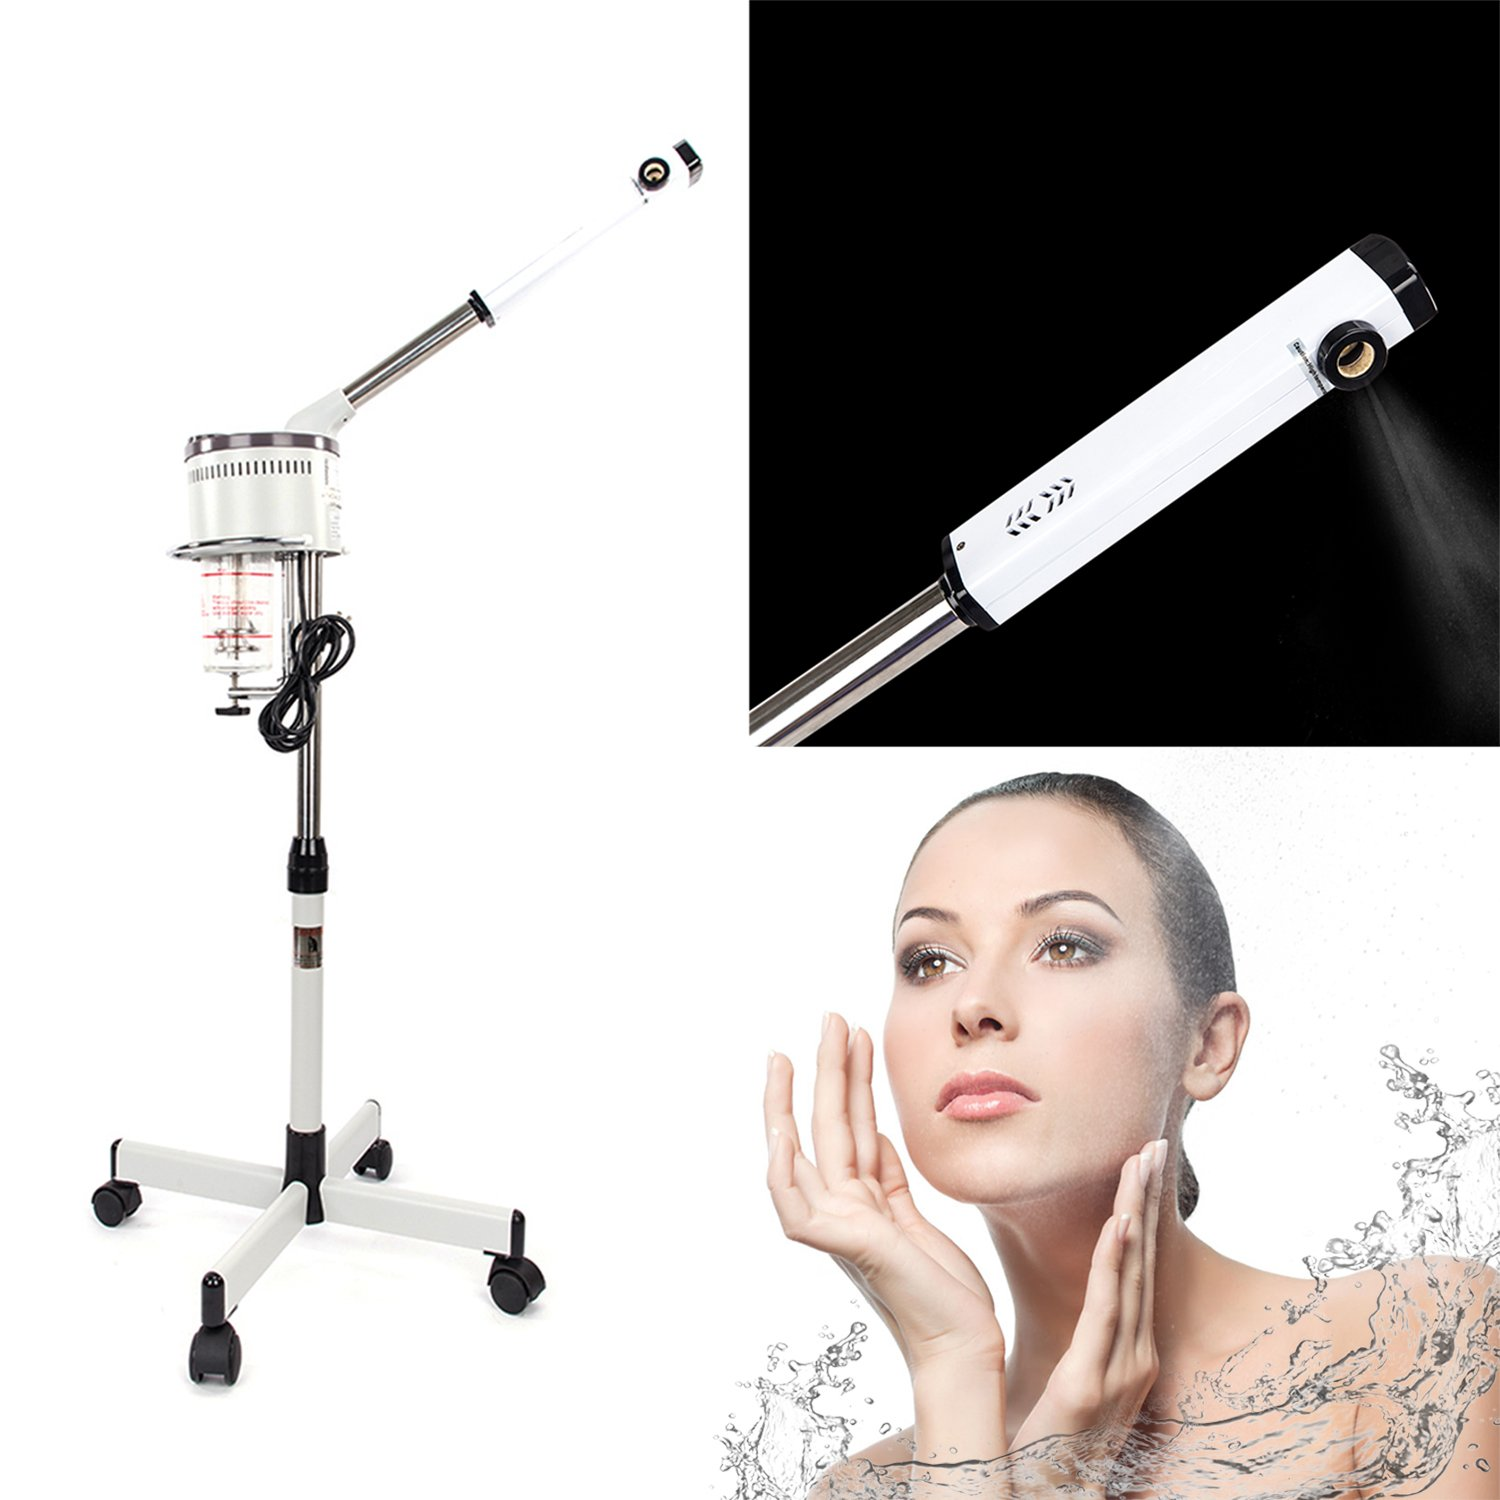 Mefeir Upgraded 650W Professional Facial Steamer Machine with Rolling Wheels,Iron Stand Base,Hot Mist Ozone Face Steamer Salon Spa Supplies Commercial Home Skin Care